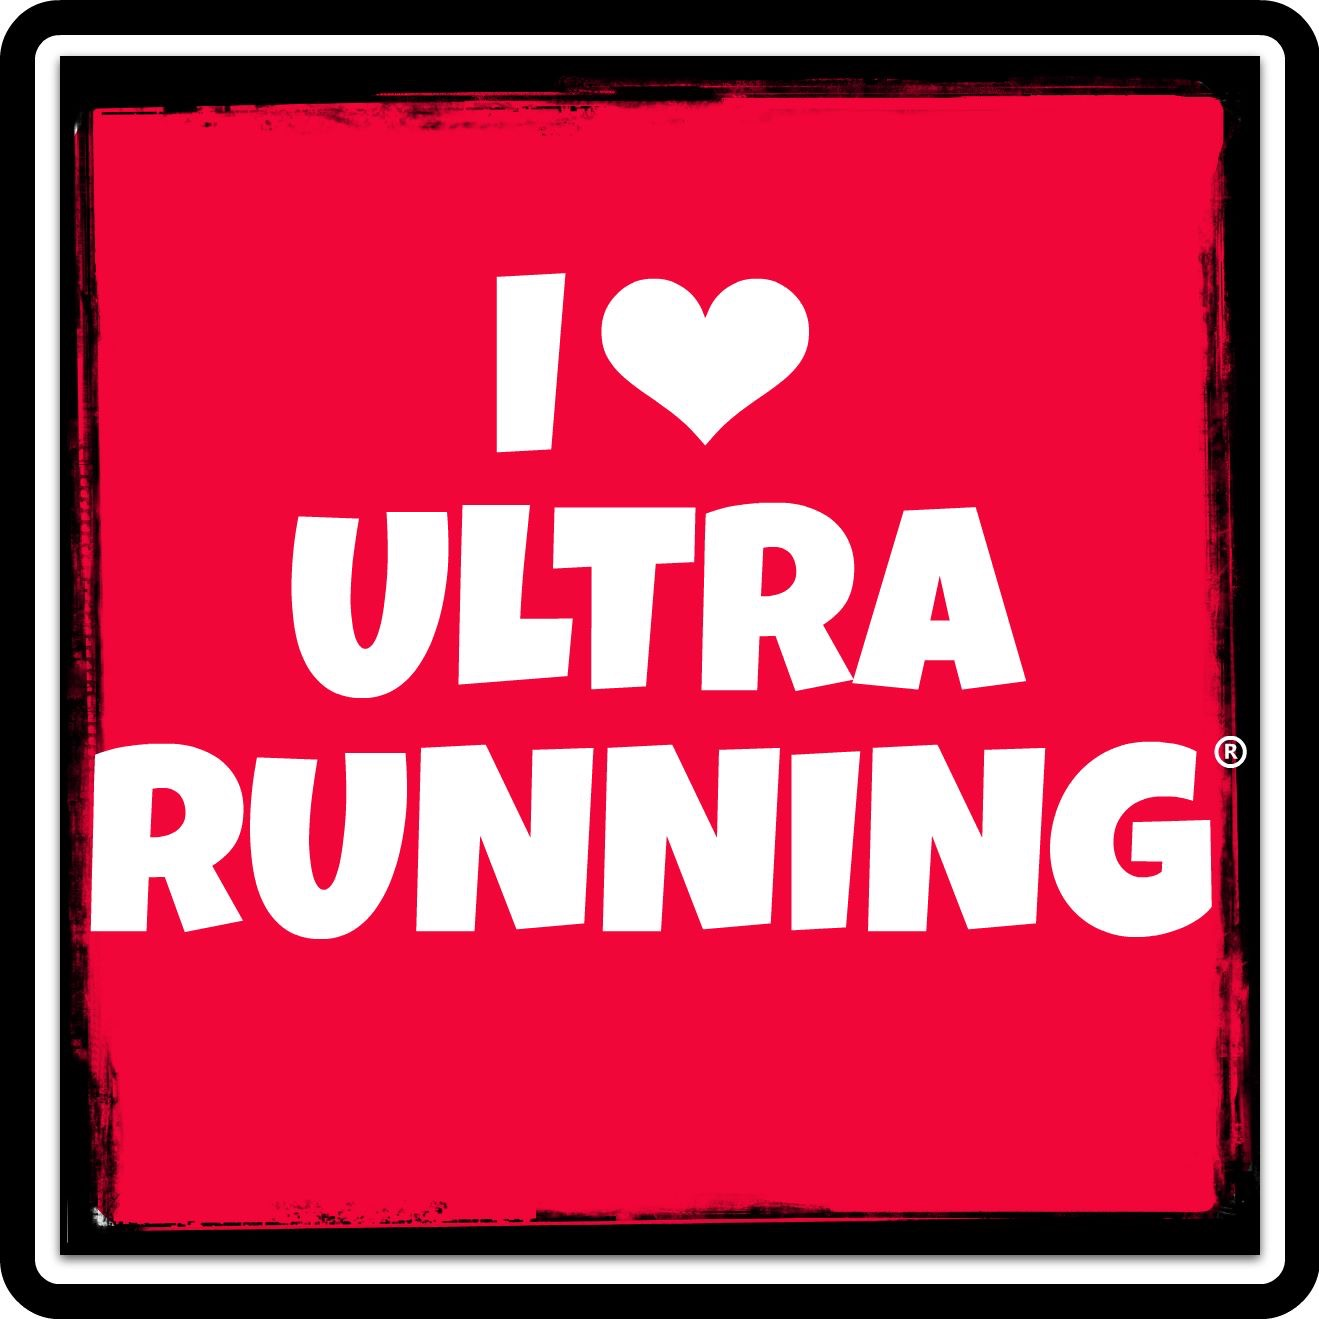 Athlete at I Love Ultra Running